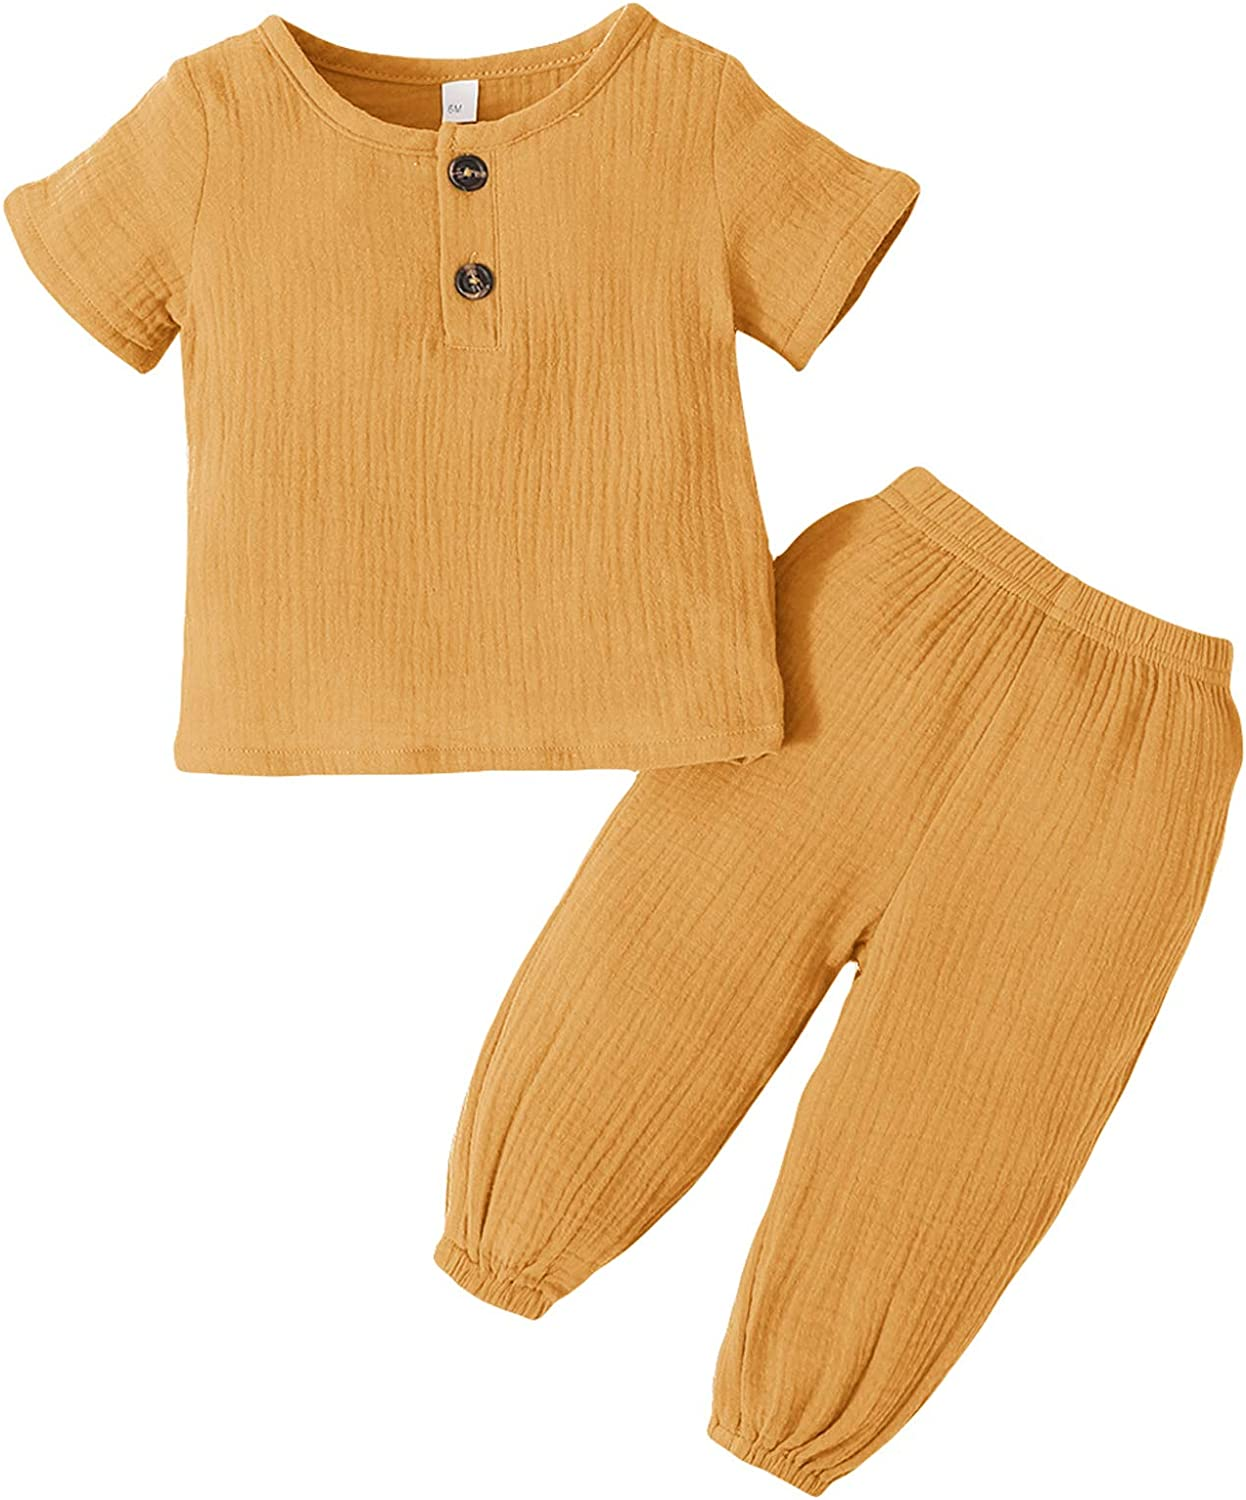 Zexxxy Baby Girls 2 Piece 98% Cotton Outfits Kids & Toddlers Pants Set